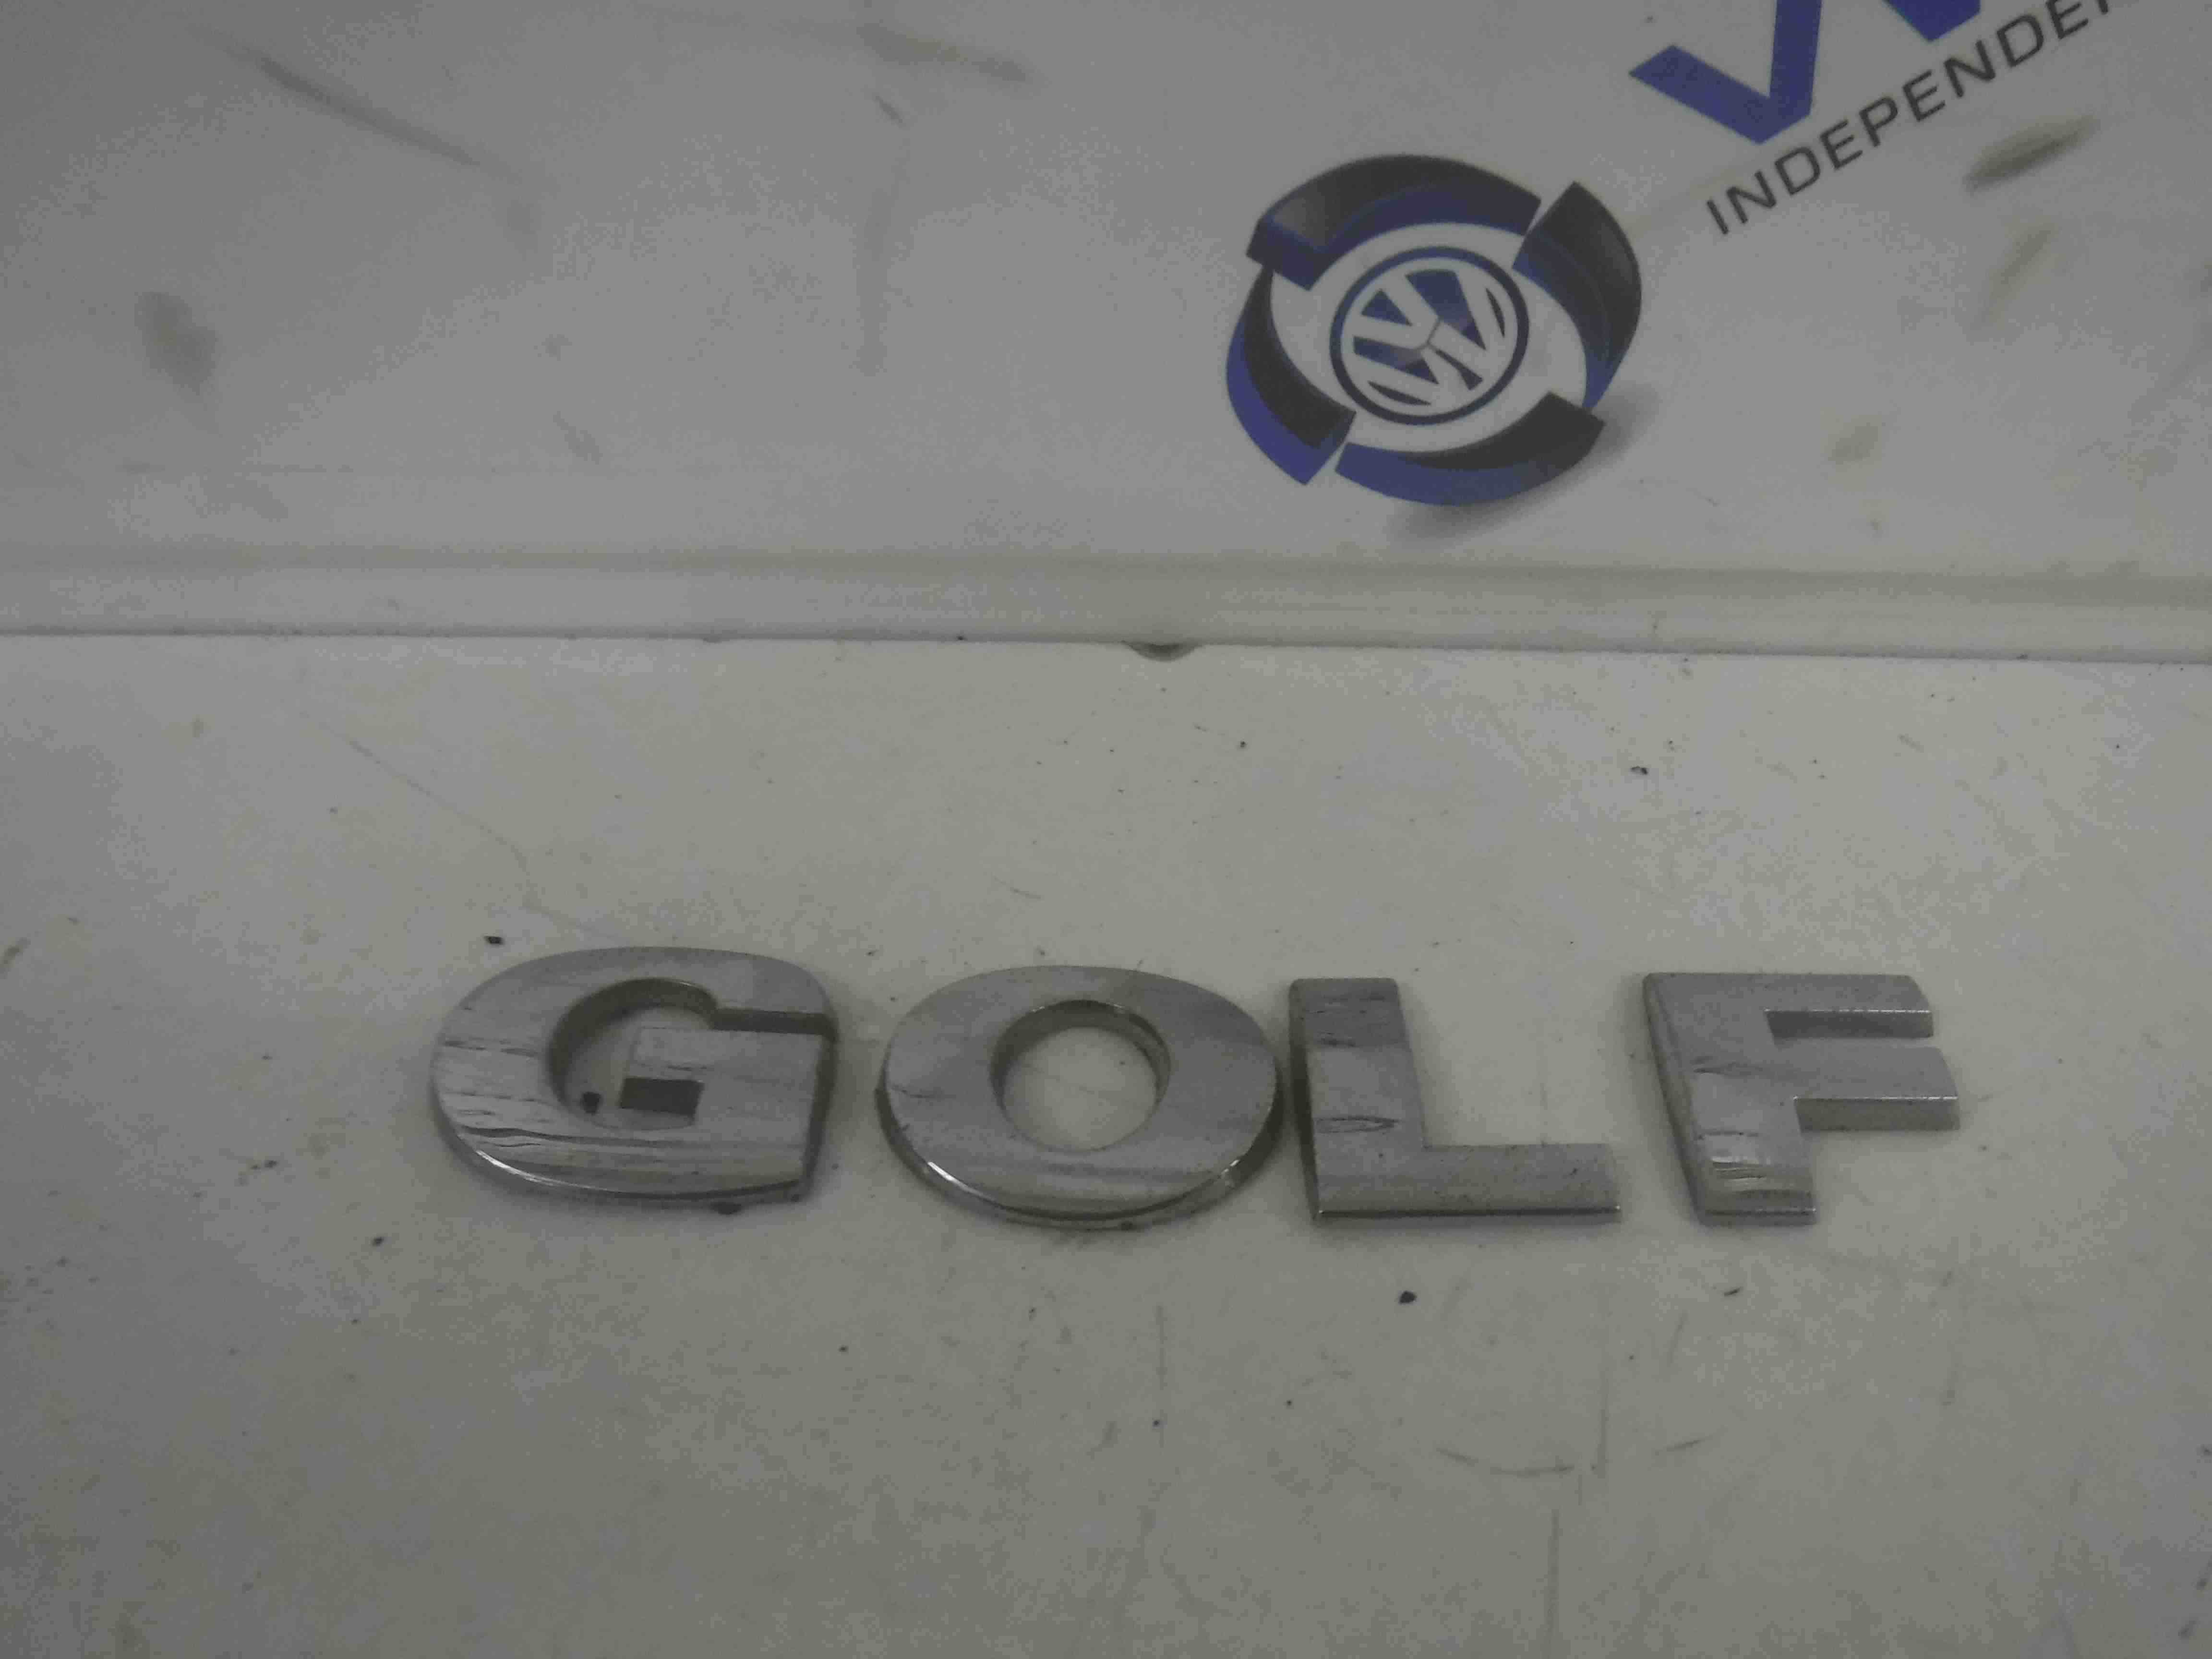 Volkswagen Golf MK4 1997-2004 Rear Boot Tailgate Letters Emblem Badge